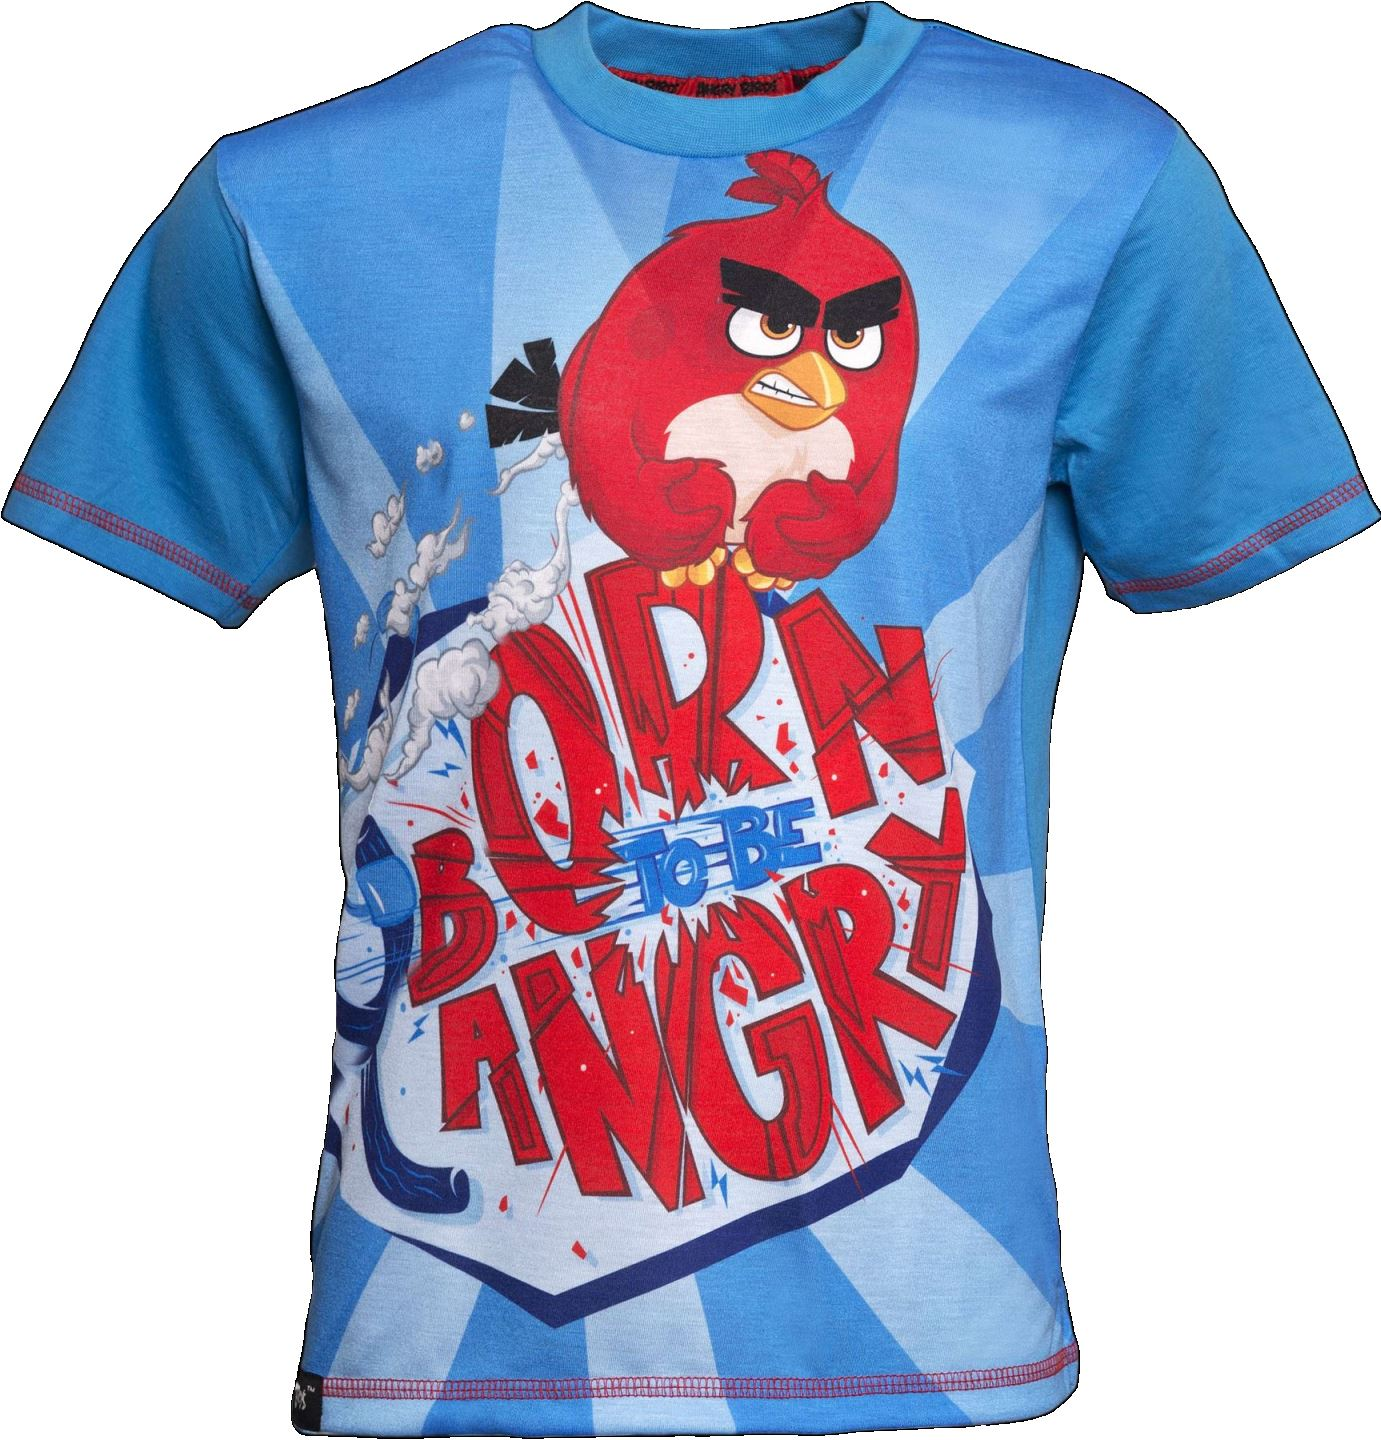 Shirt Youth Size L /& Angry Birds Out of Space T XL